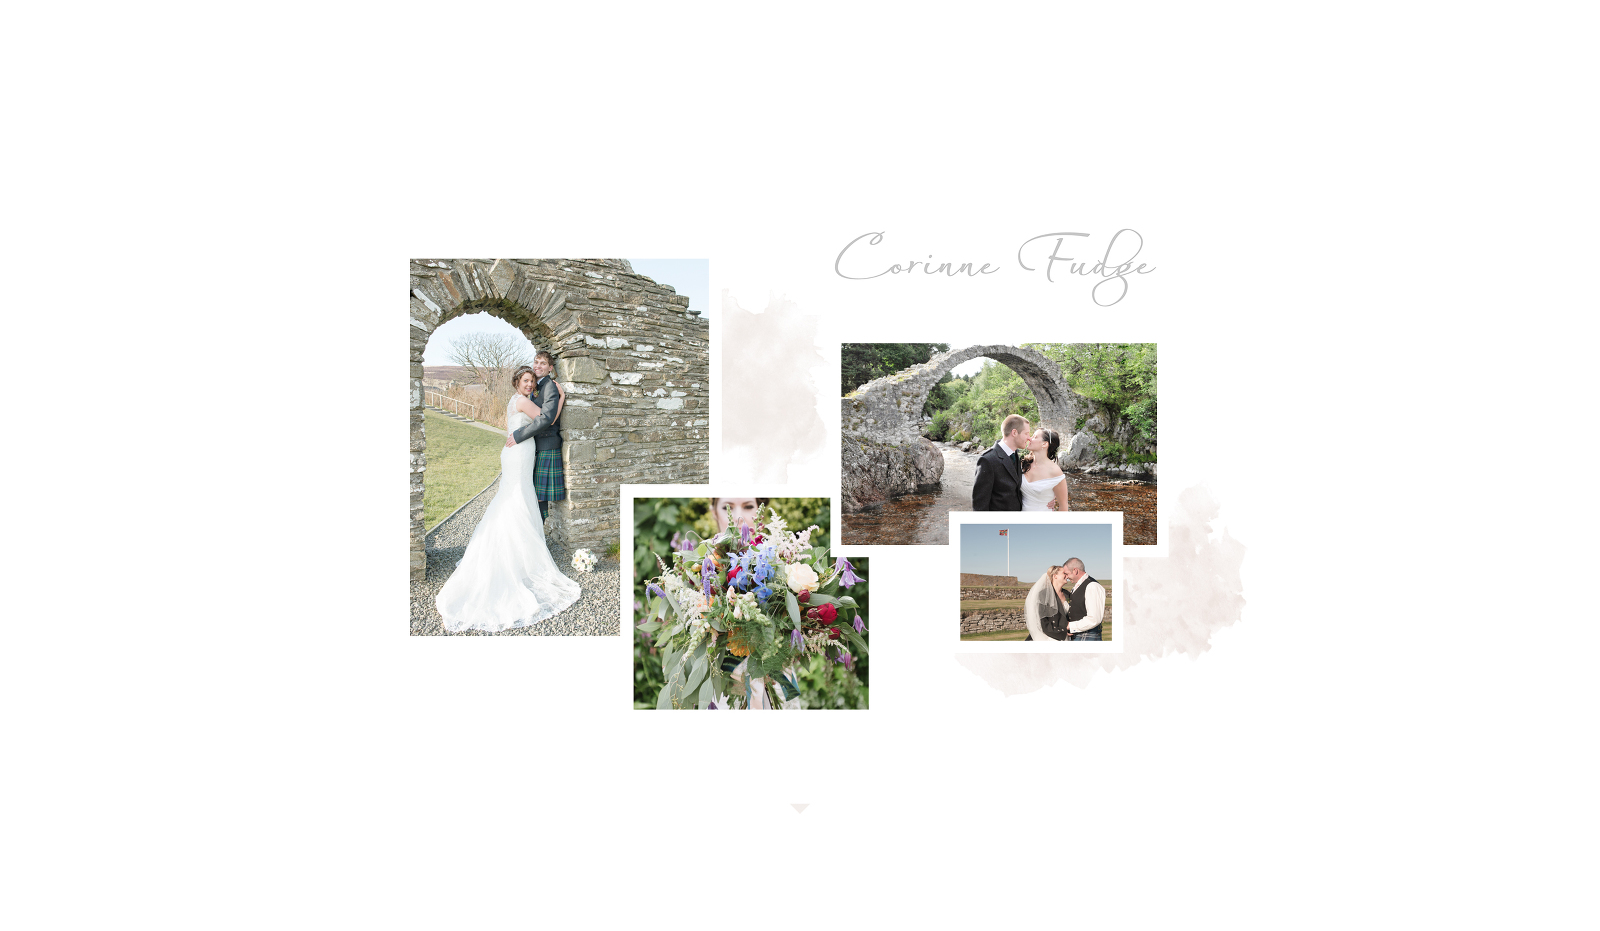 Fine Art Wedding Photographer Chester, North Wales and UK Corinne Fudge